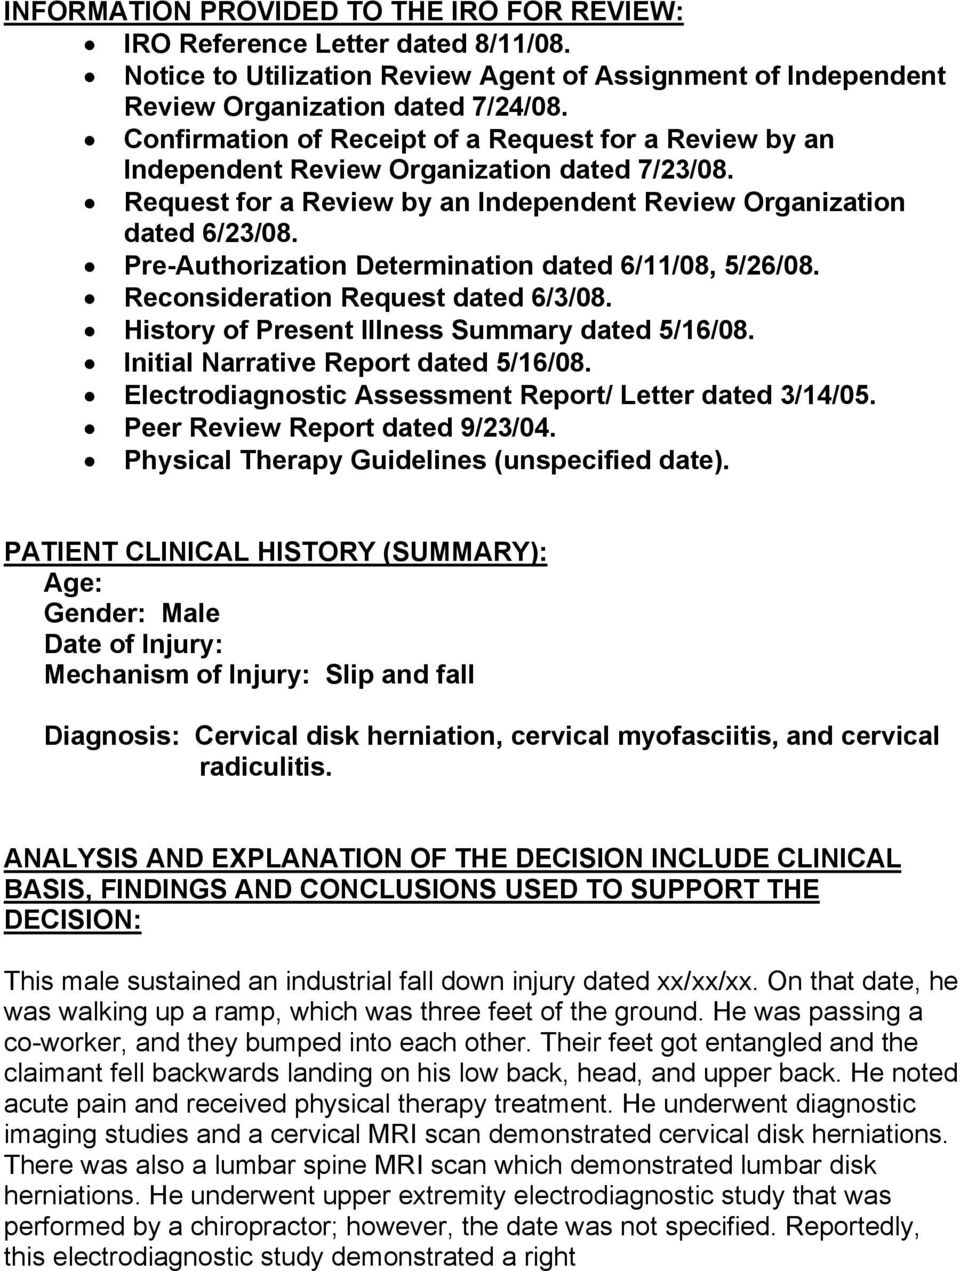 Pre-Authorization Determination dated 6/11/08, 5/26/08. Reconsideration Request dated 6/3/08. History of Present Illness Summary dated 5/16/08. Initial Narrative Report dated 5/16/08.